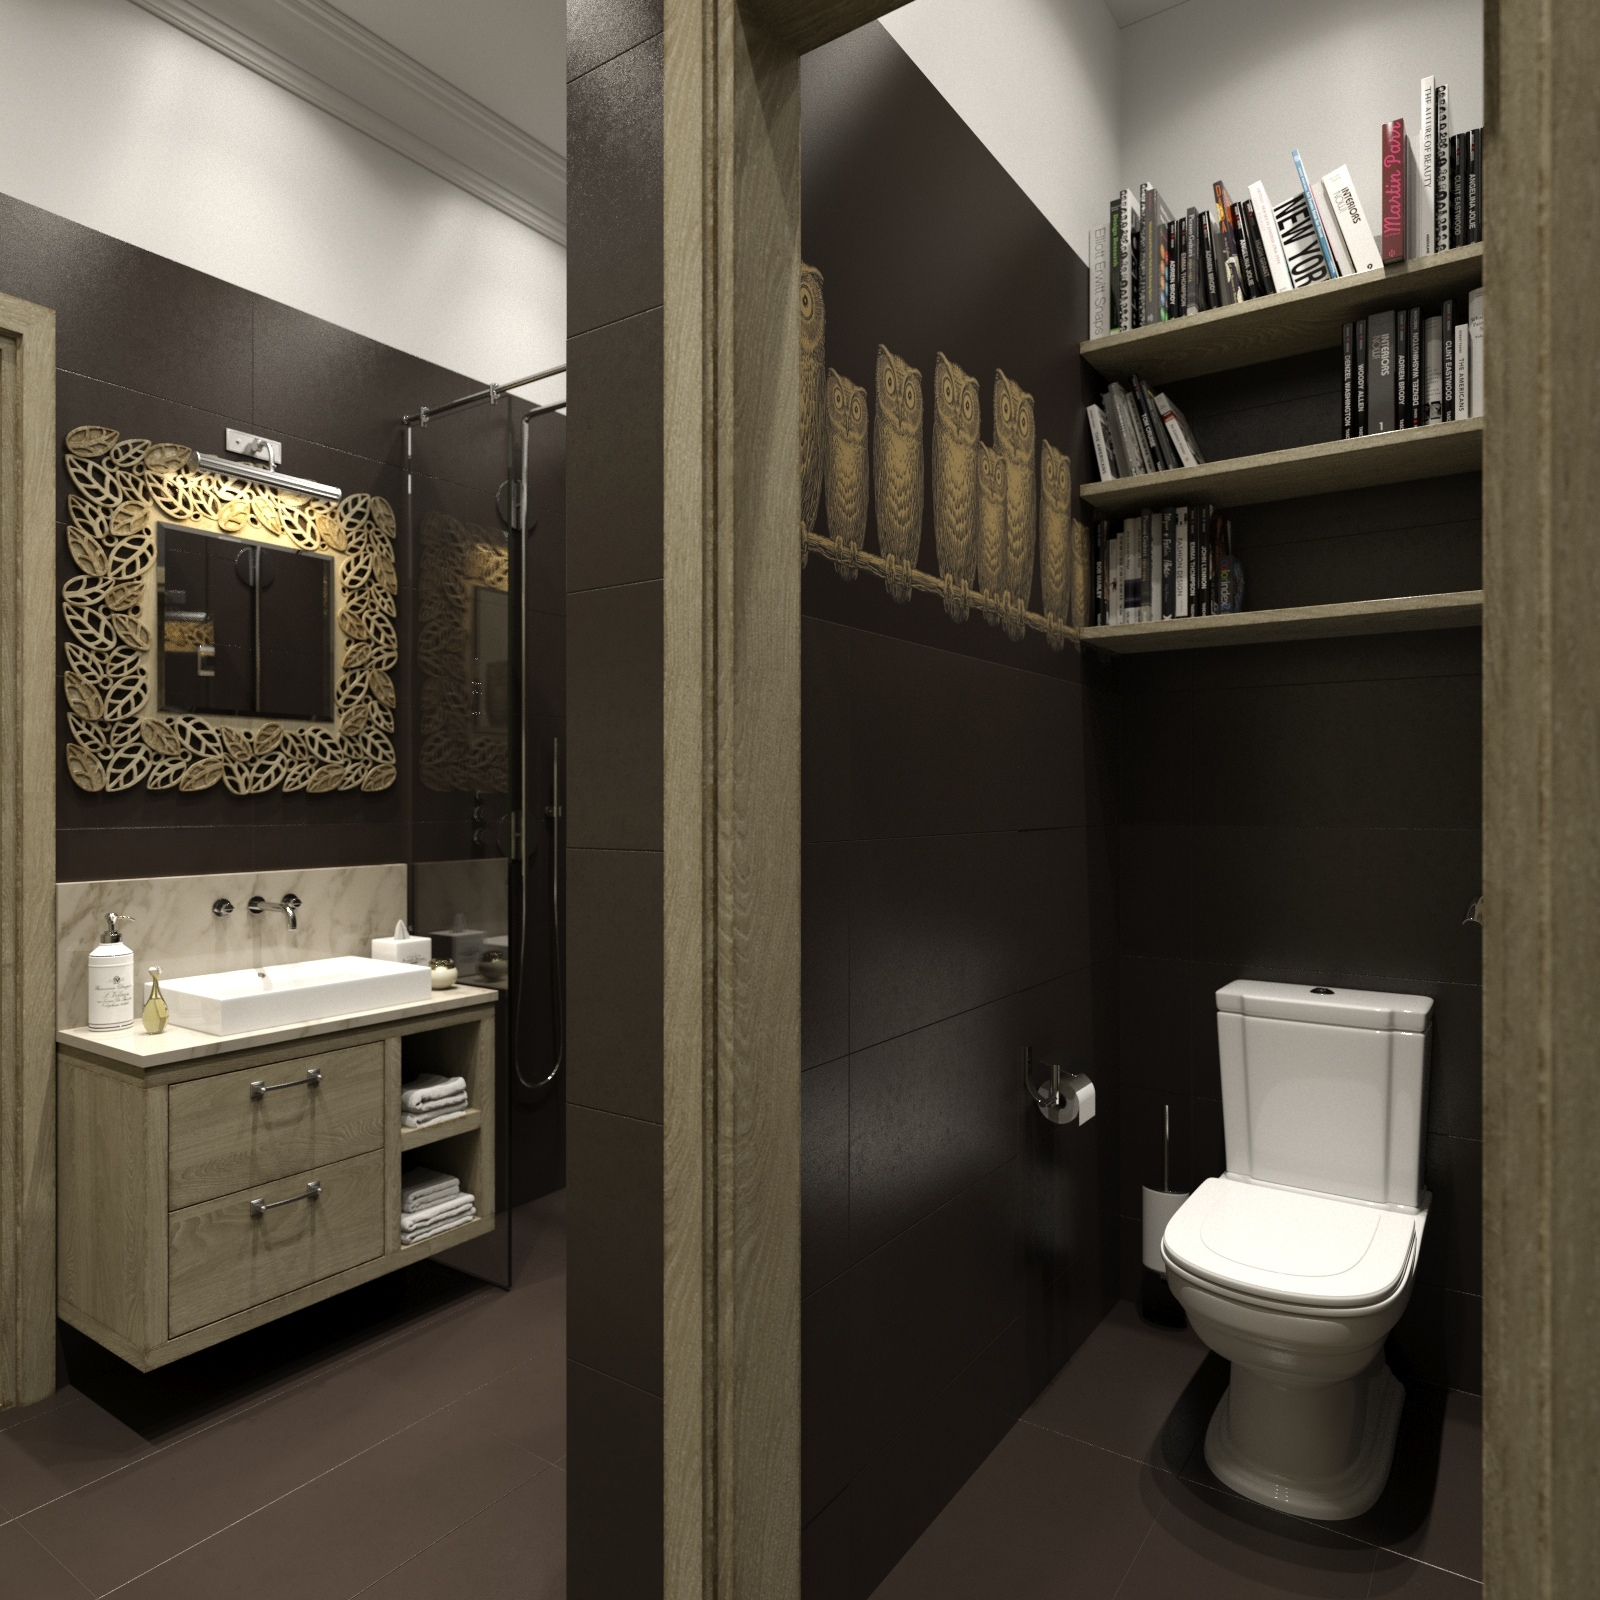 Homey feeling room designs - Decoration toilette originale ...